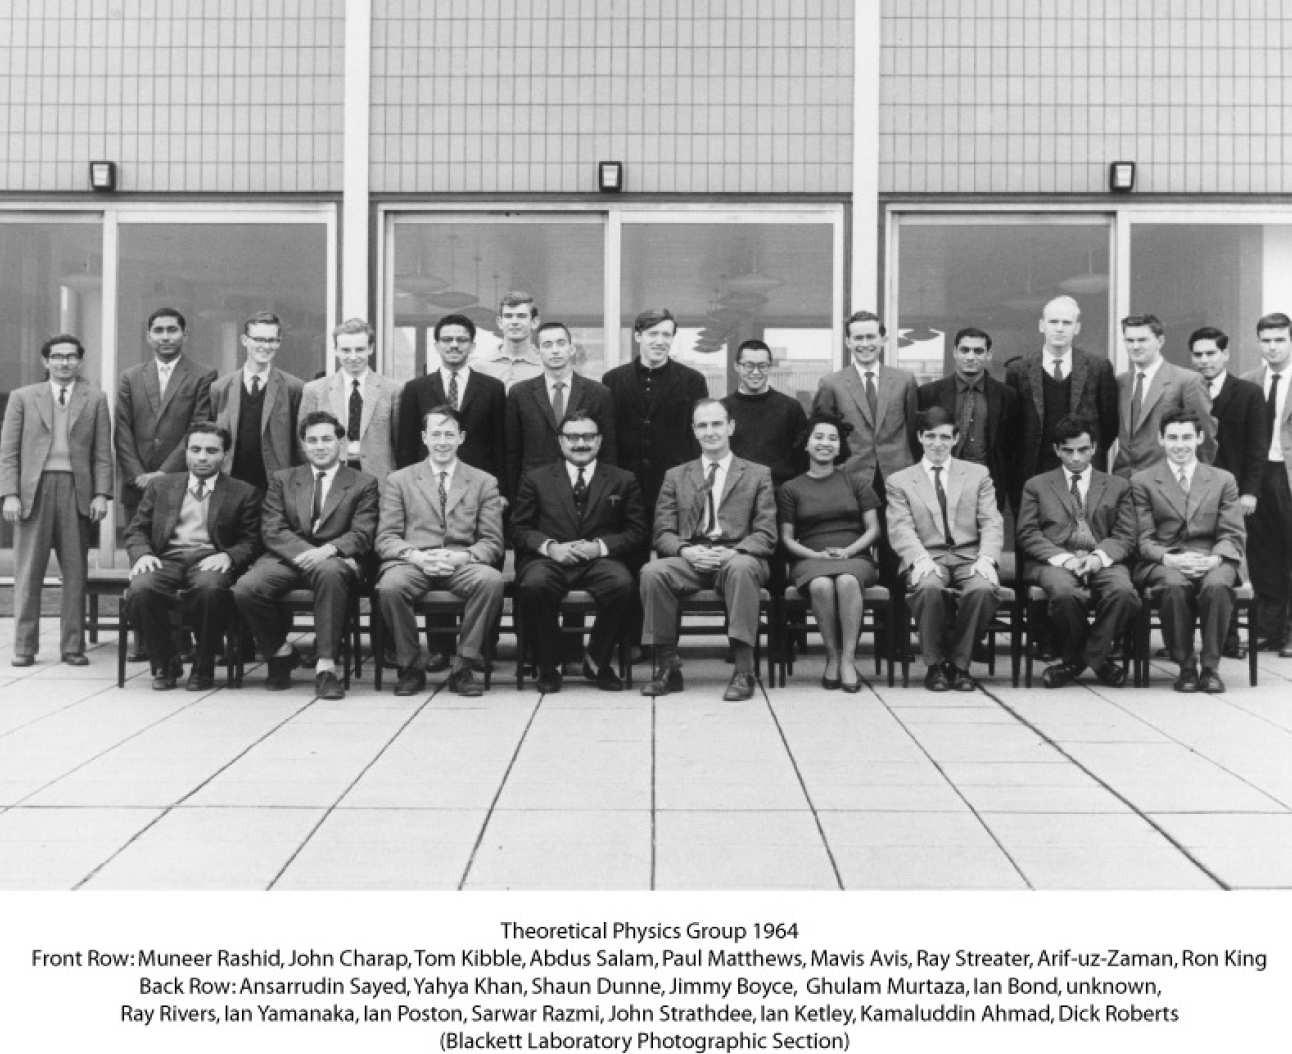 Theoretical Physics Group 1964 black and white photo